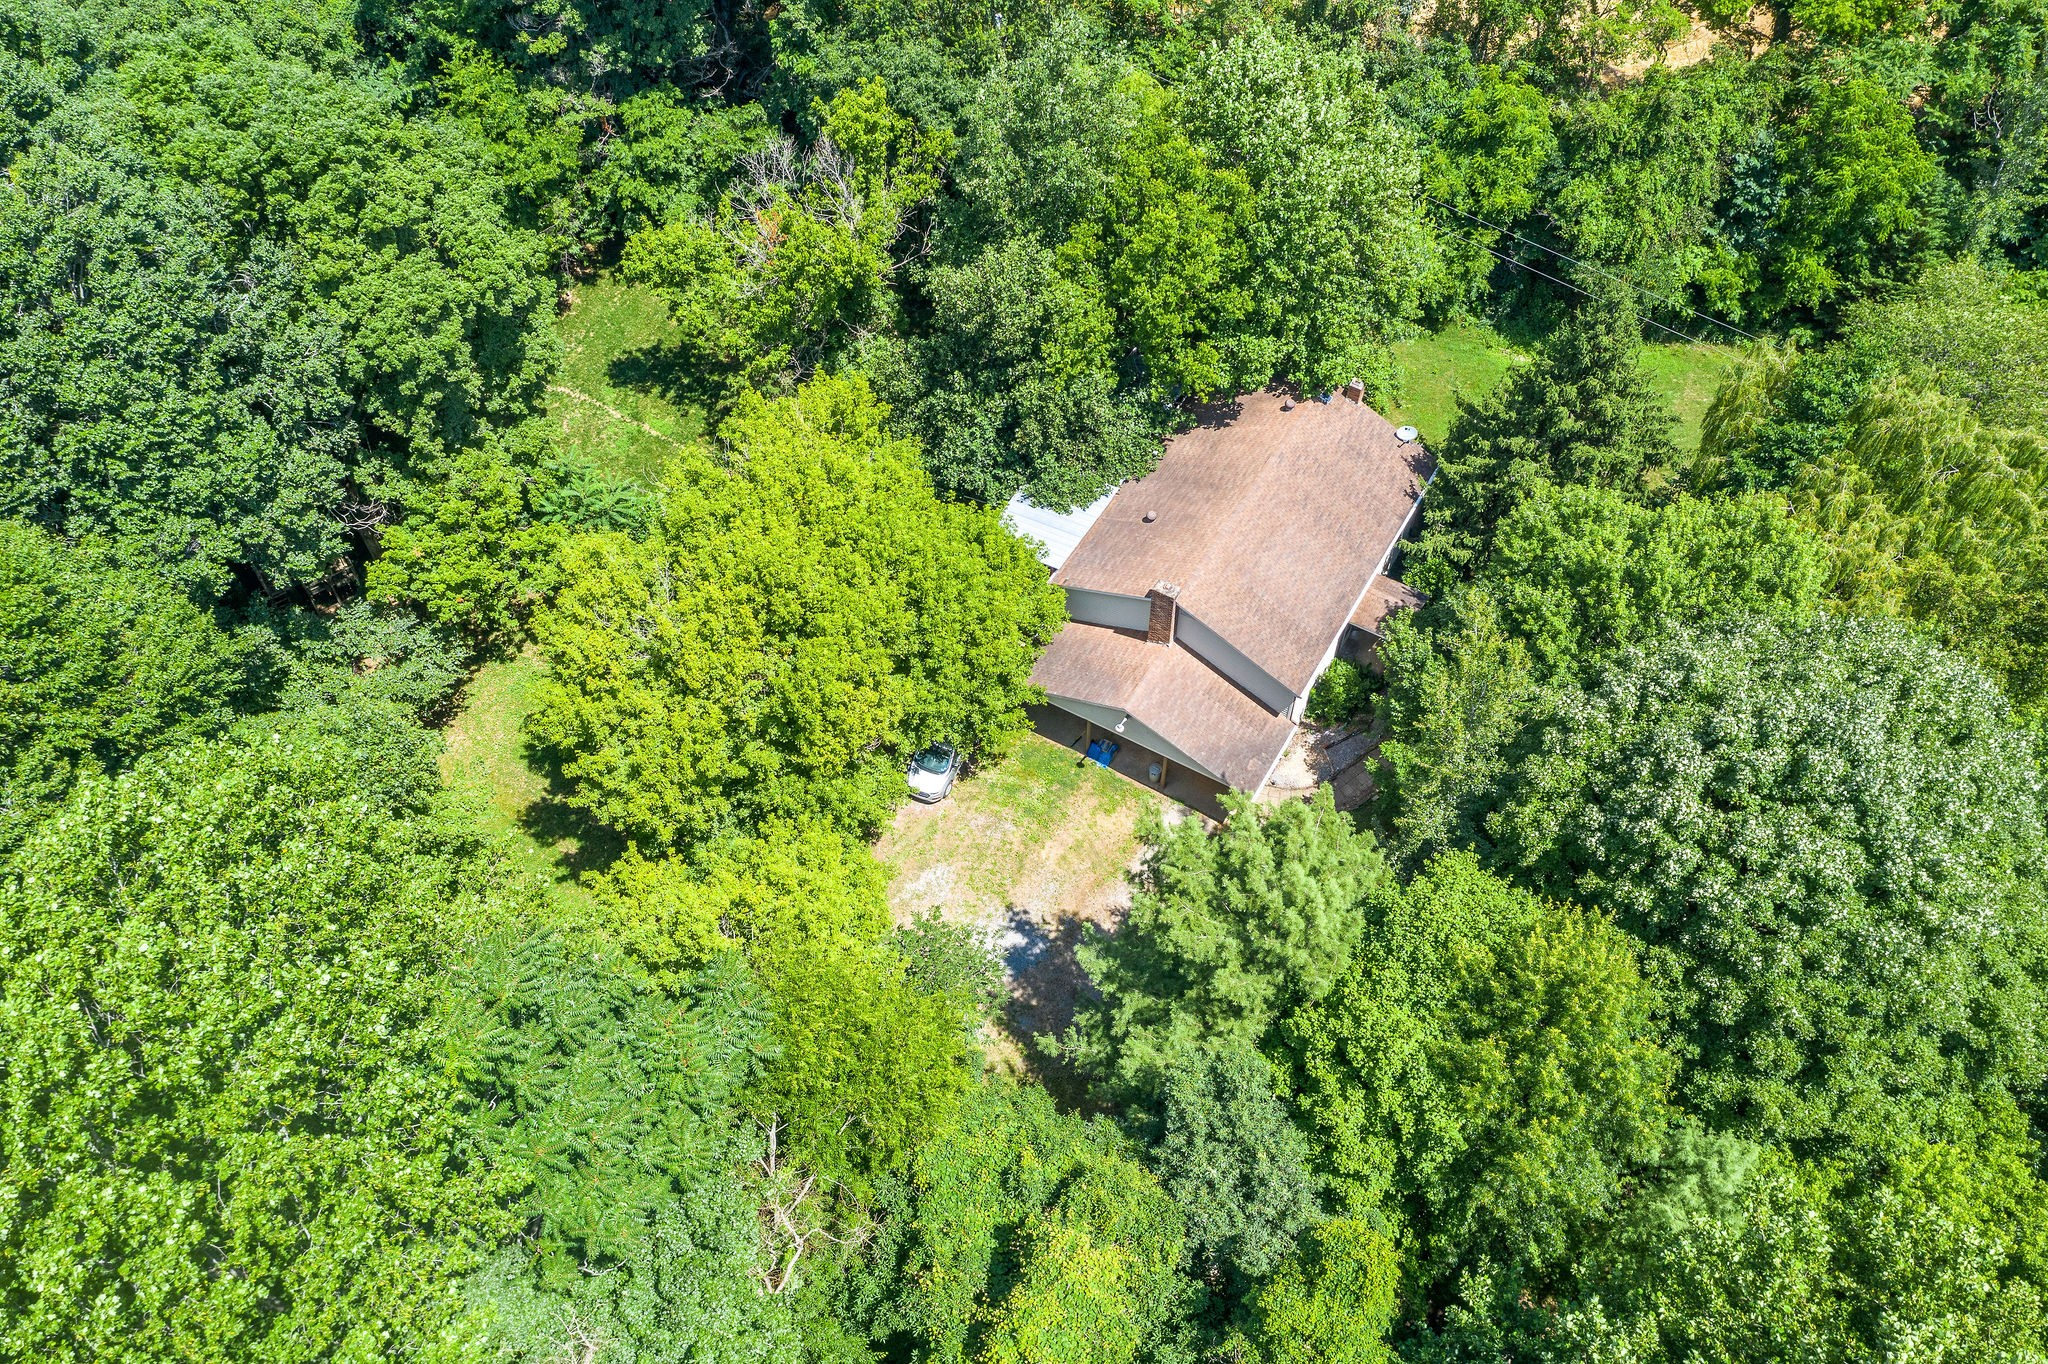 AS IS PROPERTY - Cash or Conventional ONLY - Beautiful Property with Potential for Major Remodel or a Tear Down with Build Site with Utilities Already on Property - Home has Potential to be 6 Bedrooms with Upstairs or Downstairs Living Space